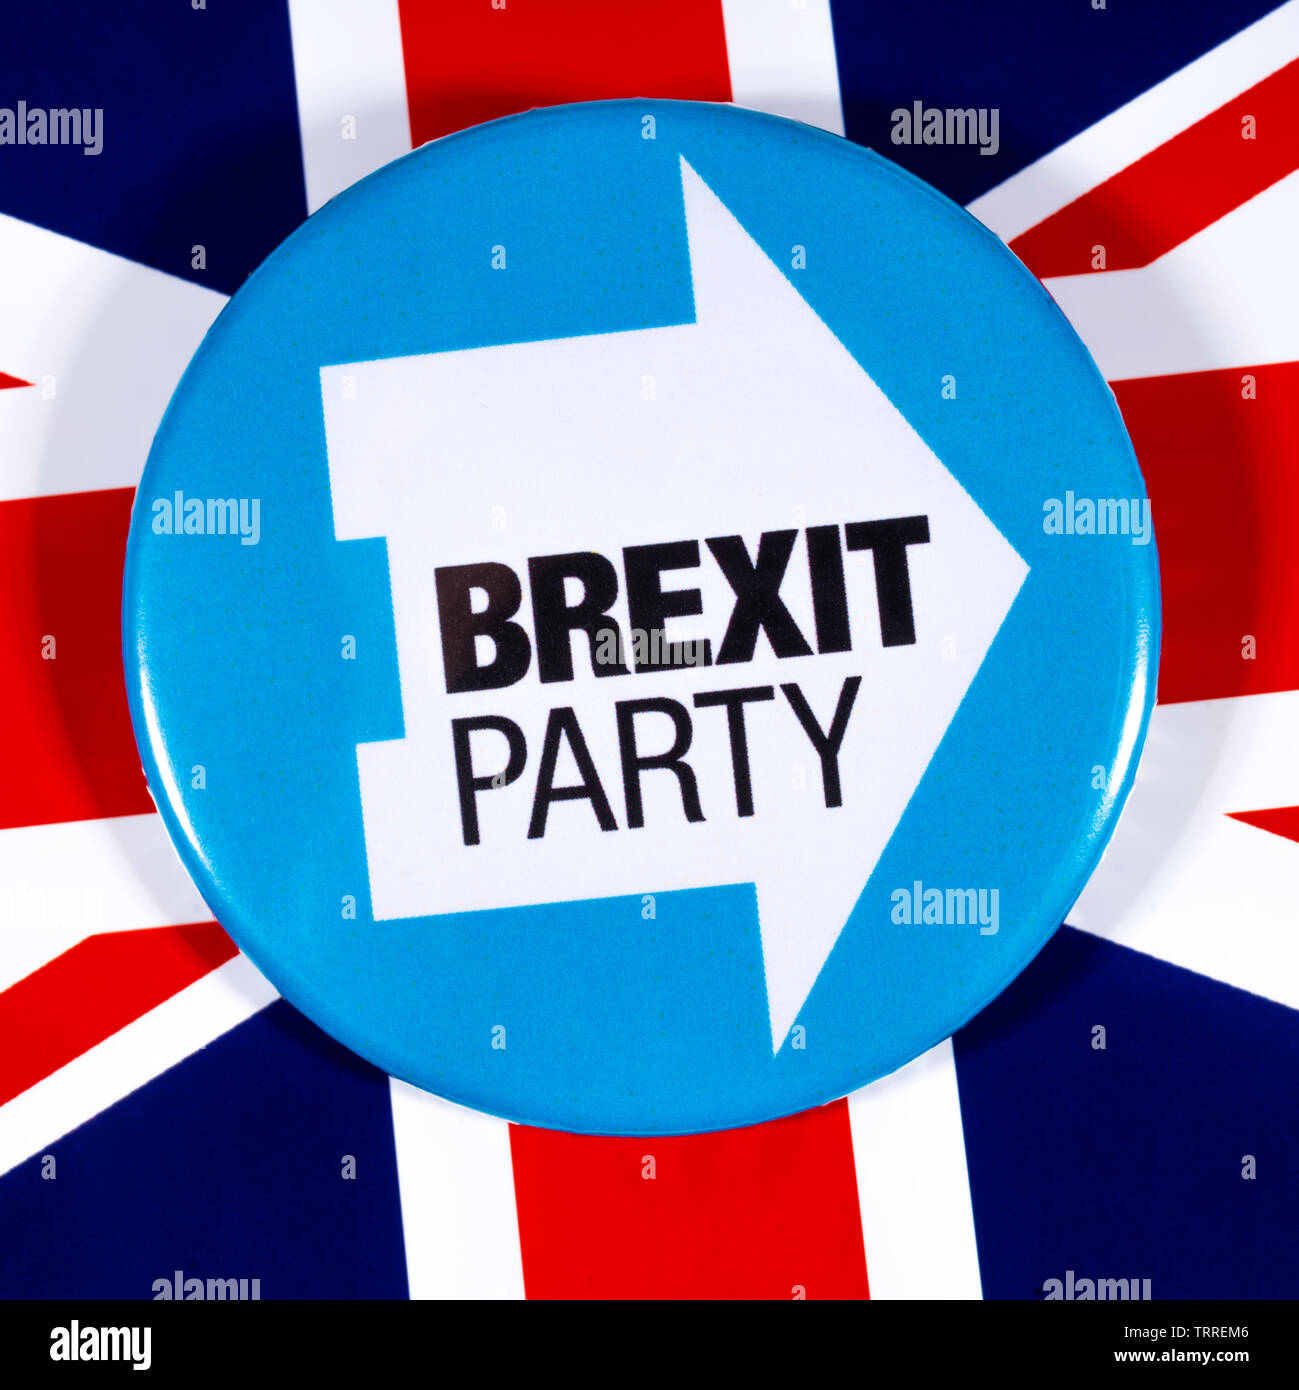 London, UK - May 29th 2019: A pin badge for the Brexit Party, pictured over the UK flag.  The Brexit Party are a UK political party led by Nigel Farag - Stock Image